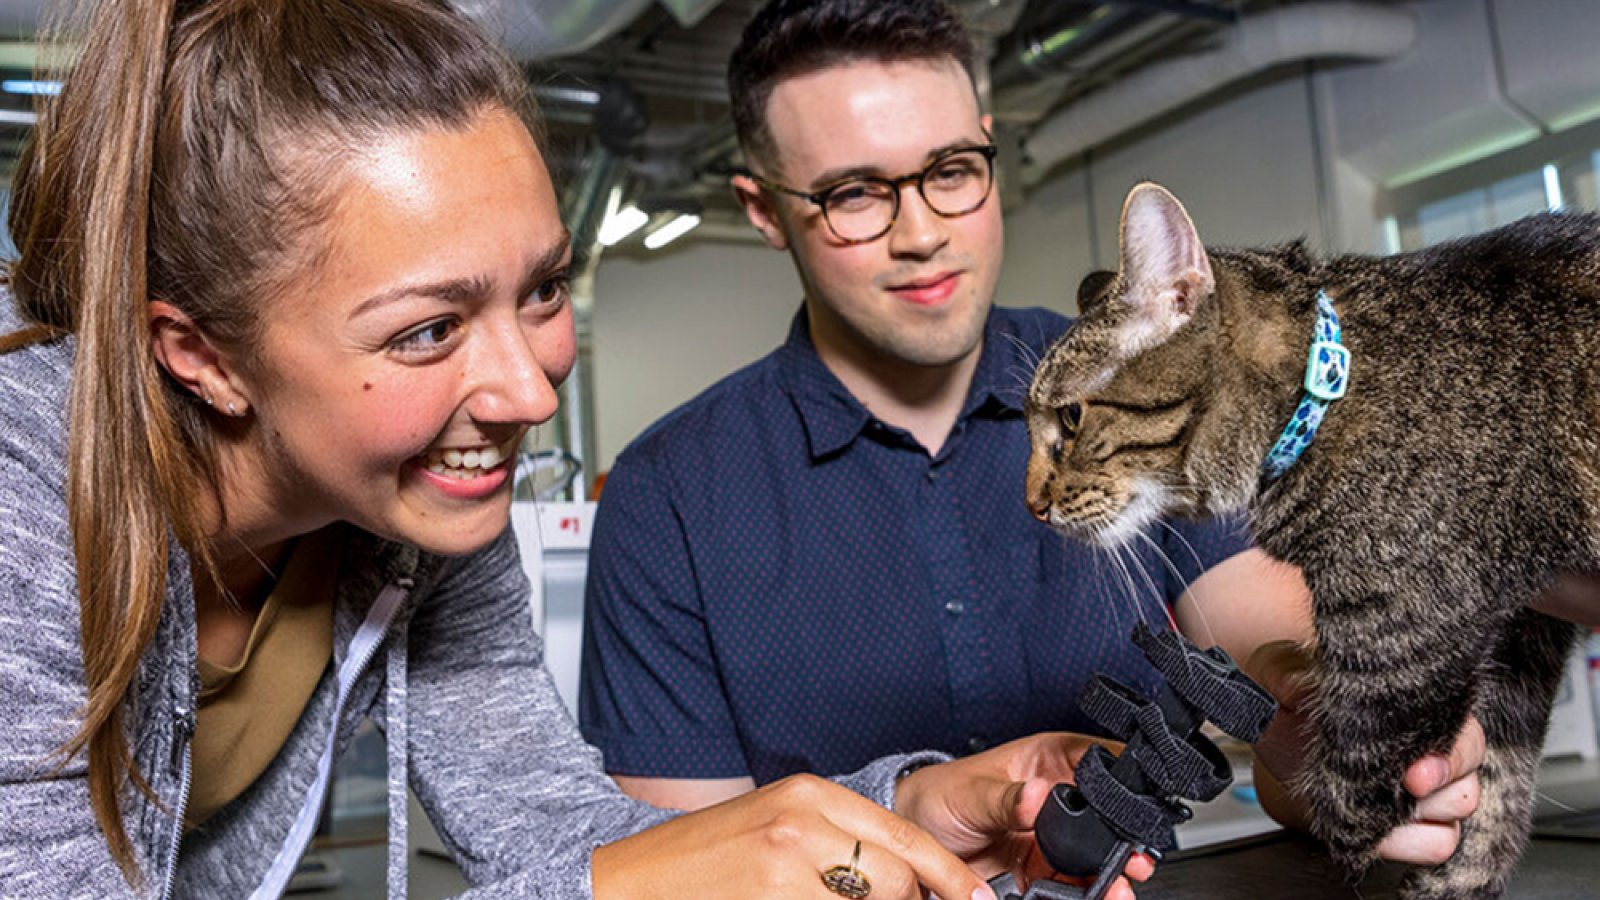 Recent Husker graduate Abby Smith (left) holds a prosthetic prototype that she and senior Harrison Grasso (center) helped develop for Olive (right), who is missing part of her left foreleg. (Craig Chandler / University Communication)